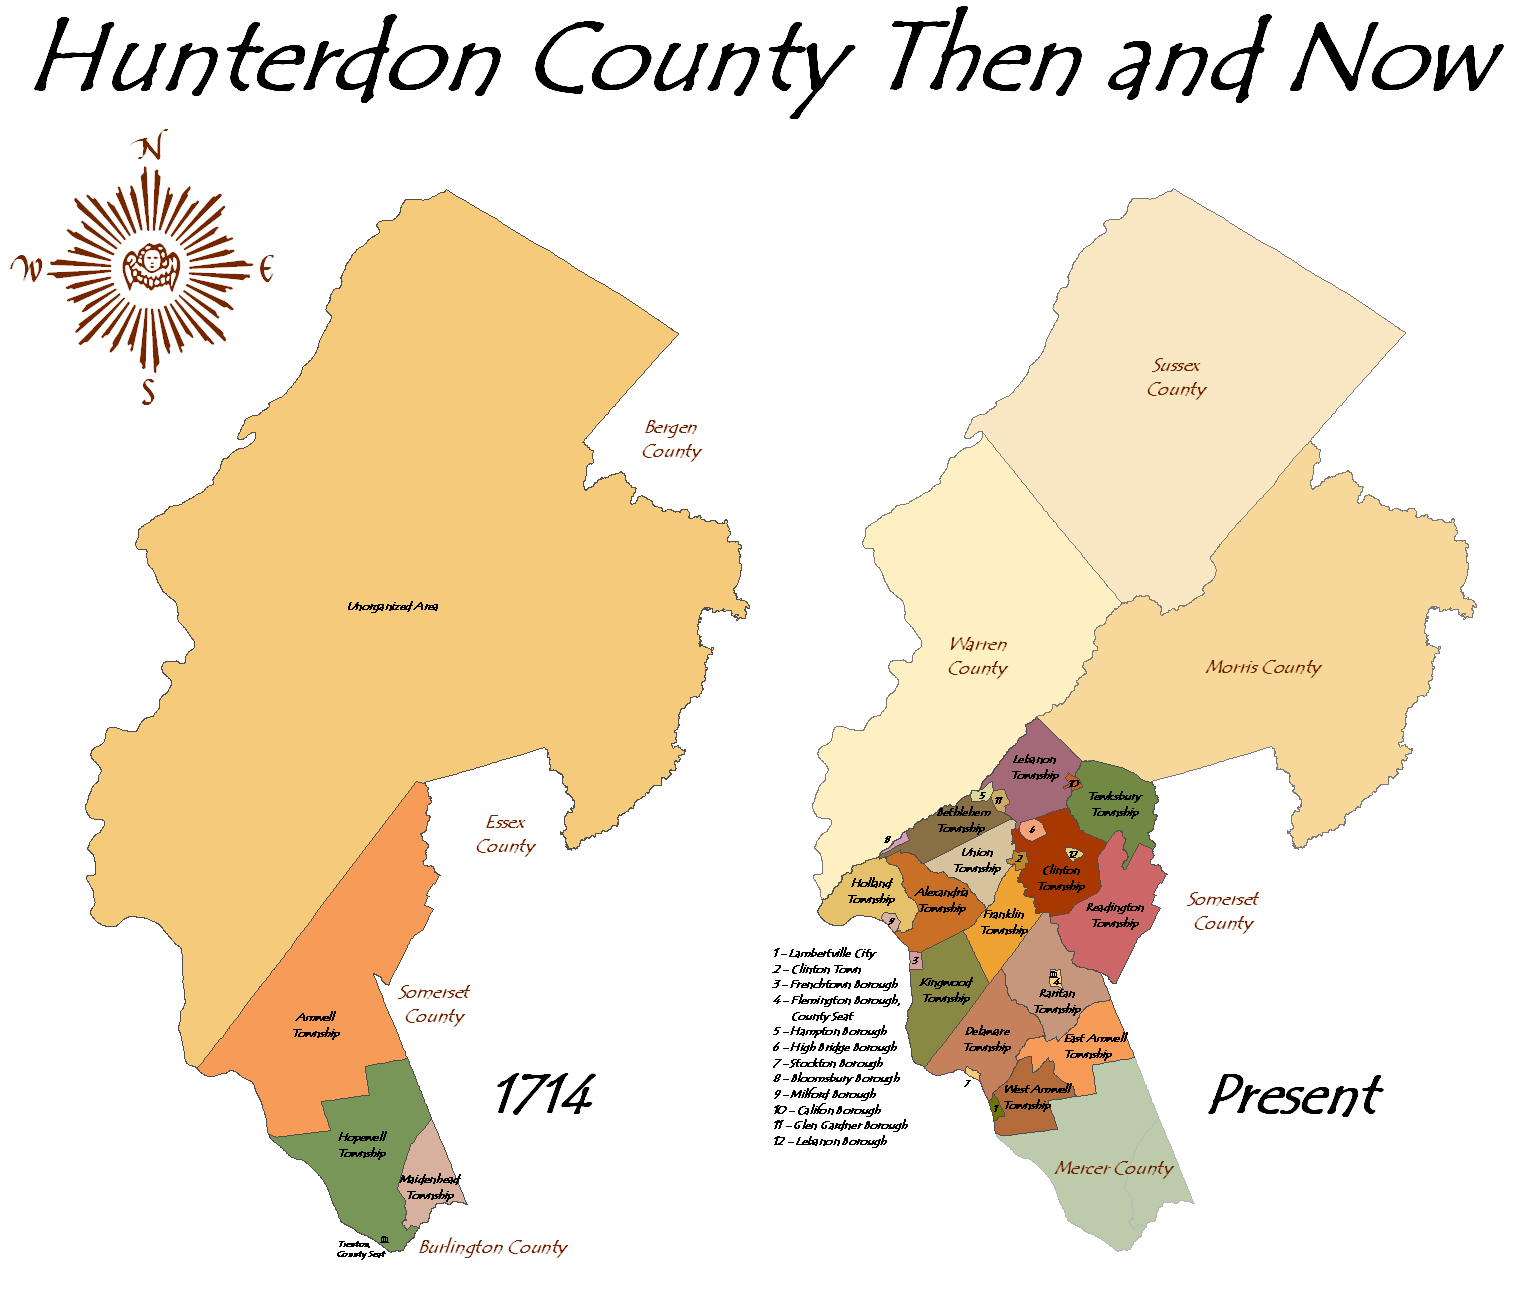 Hunterdon County Tricentennial Celetion on camden county, map of colonia, map of bethlehem township, map of white township, map of springfield township, sussex county, burlington county, map of upper bucks, monmouth county, nassau county, map of hoboken, map of marlboro, map of roselle, passaic county, new jersey hunterdon county, map of fairview, somerset county, map of point breeze, map of pemberton township, ocean county, map of summit, bucks county, cumberland county, middlesex county, morris county, atlantic county, warren county, mercer county, map of haledon, map of washington township, bergen county, map of middlesex, union county, map of new providence, map of red bank, map of elmwood park, map of trenton, essex county, hudson county,